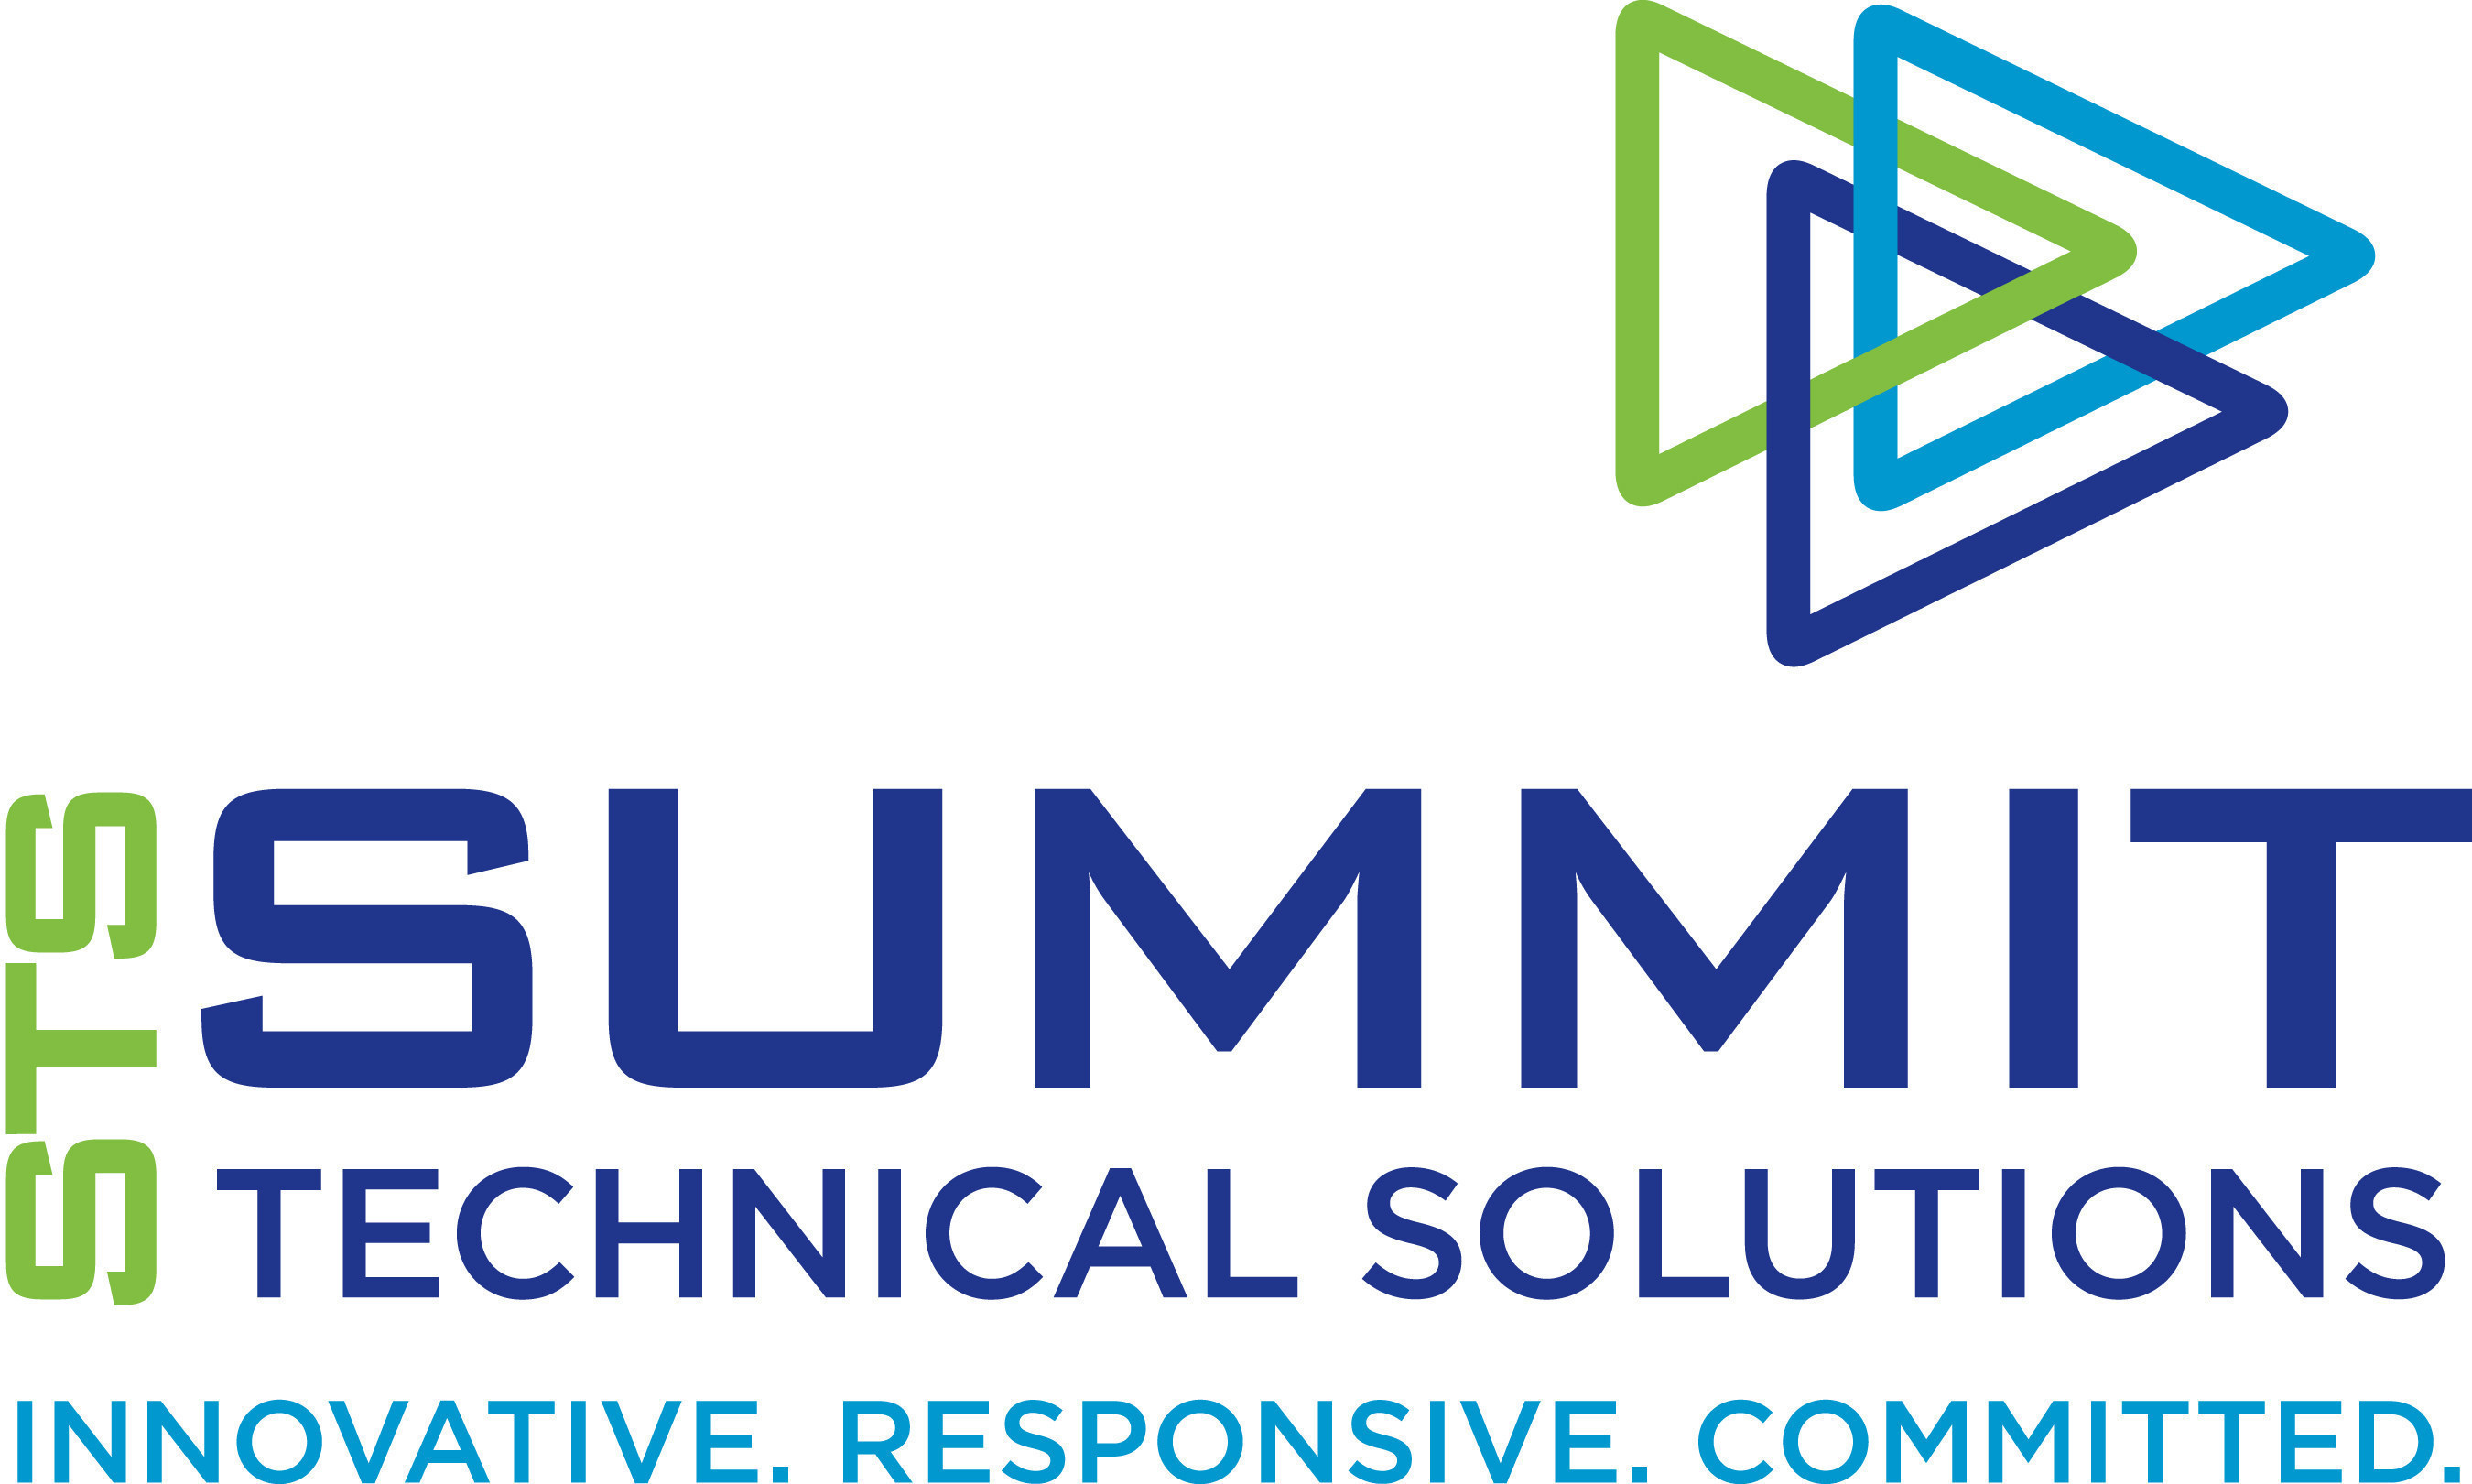 The American Legion Department of Colorado Awards Summit Technical Solutions the Employer of Veterans Award